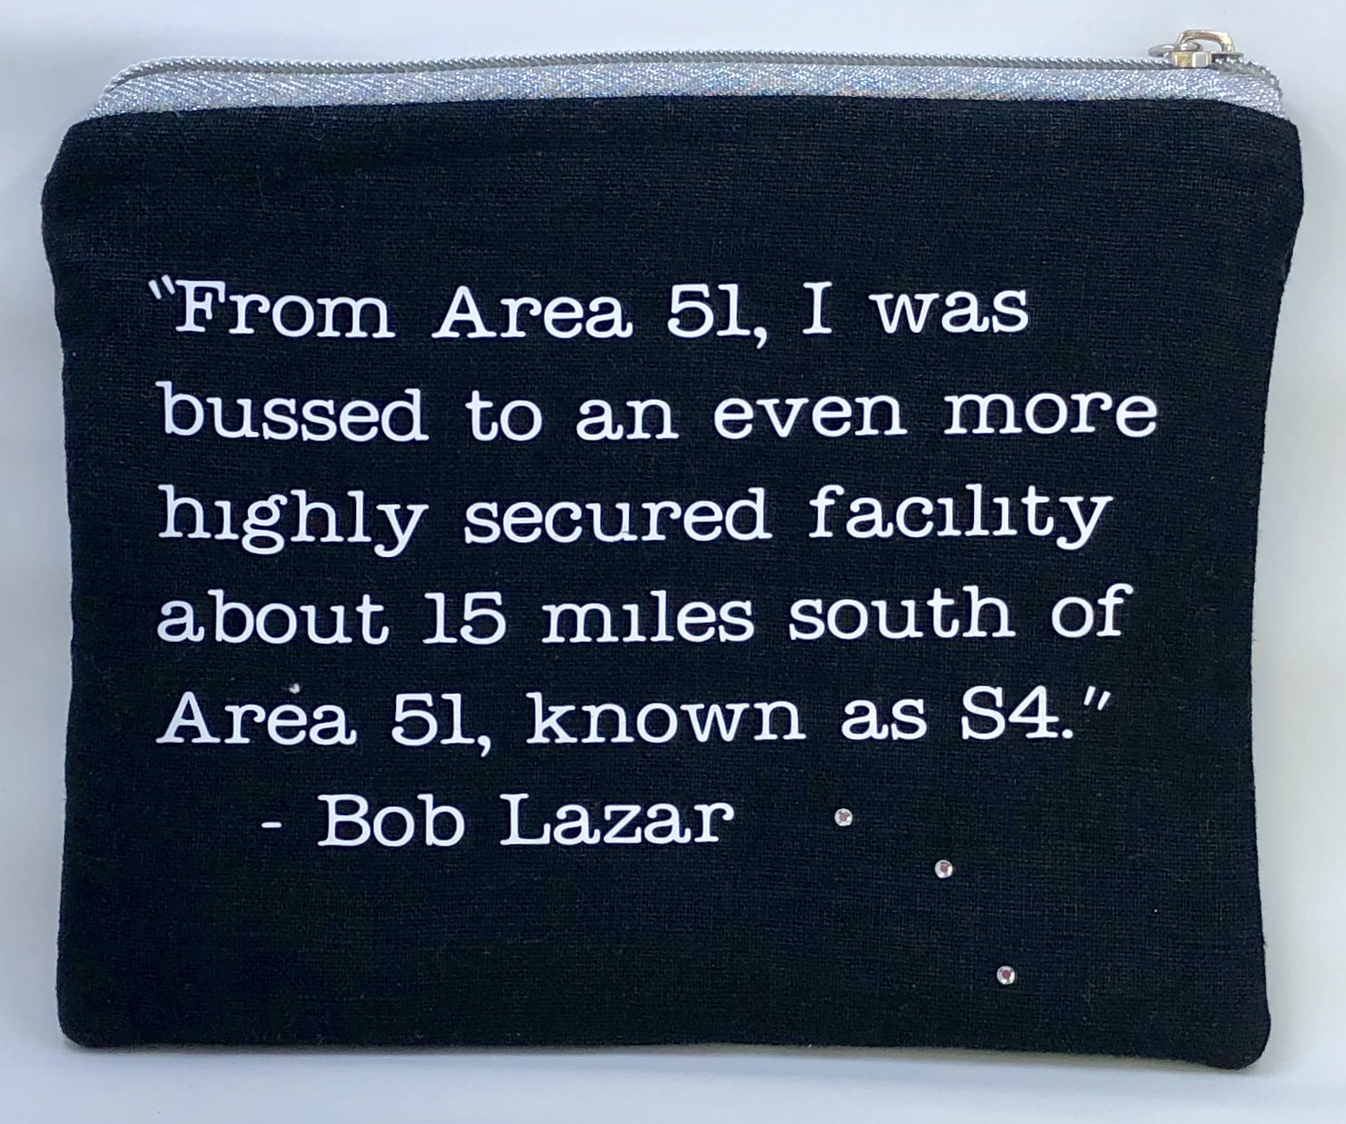 from 'Wambui Made It' - I believe Bob Lazar pouch - back